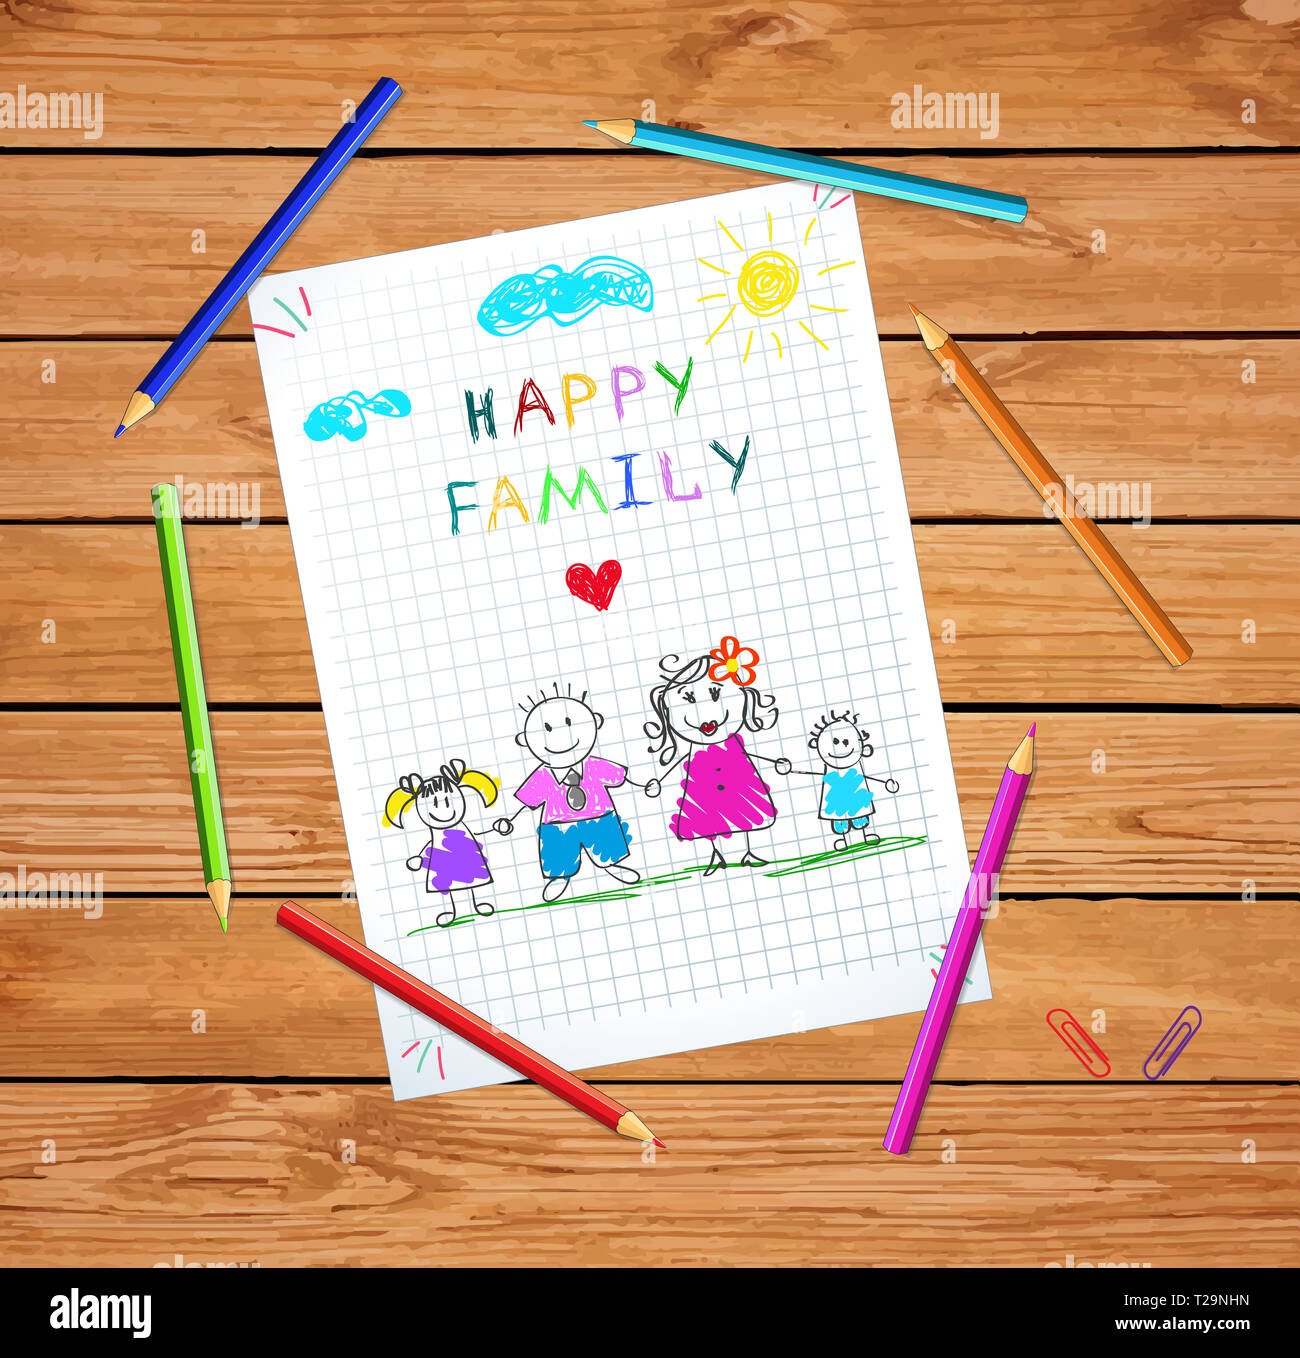 Young Parents Holding Hands of Children. Happy Family Day Greeting Card on Wooden Table Background with Colored Pencils Around. Doodle Style. Baby Dra Stock Photo